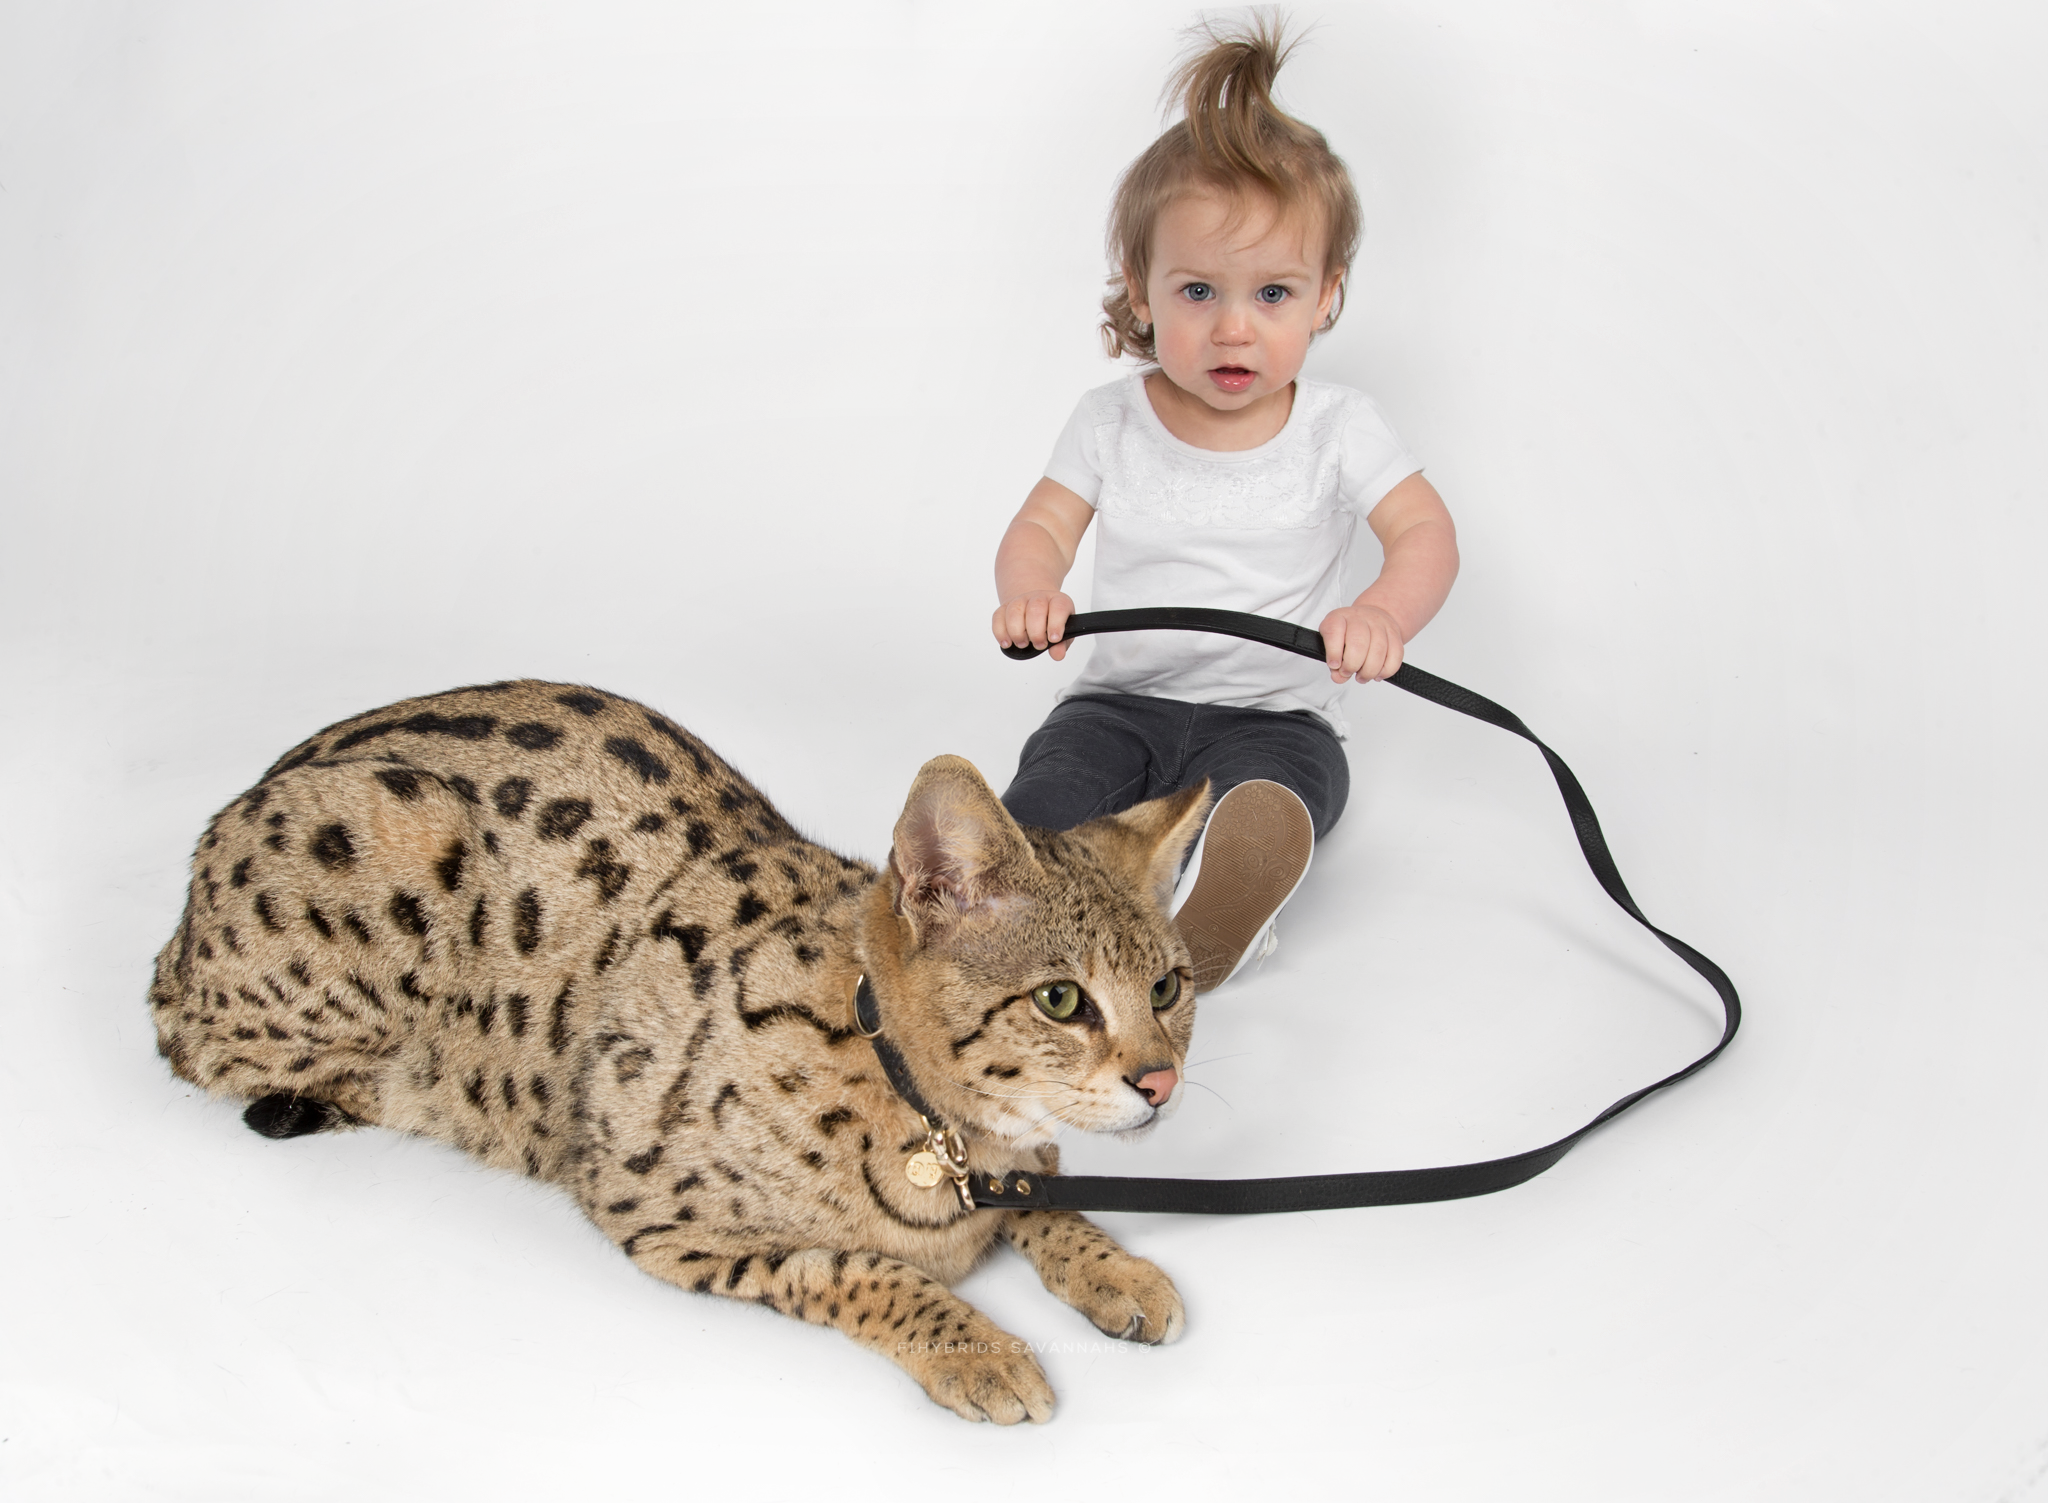 Eva & Omi - F1 Savannah Cat